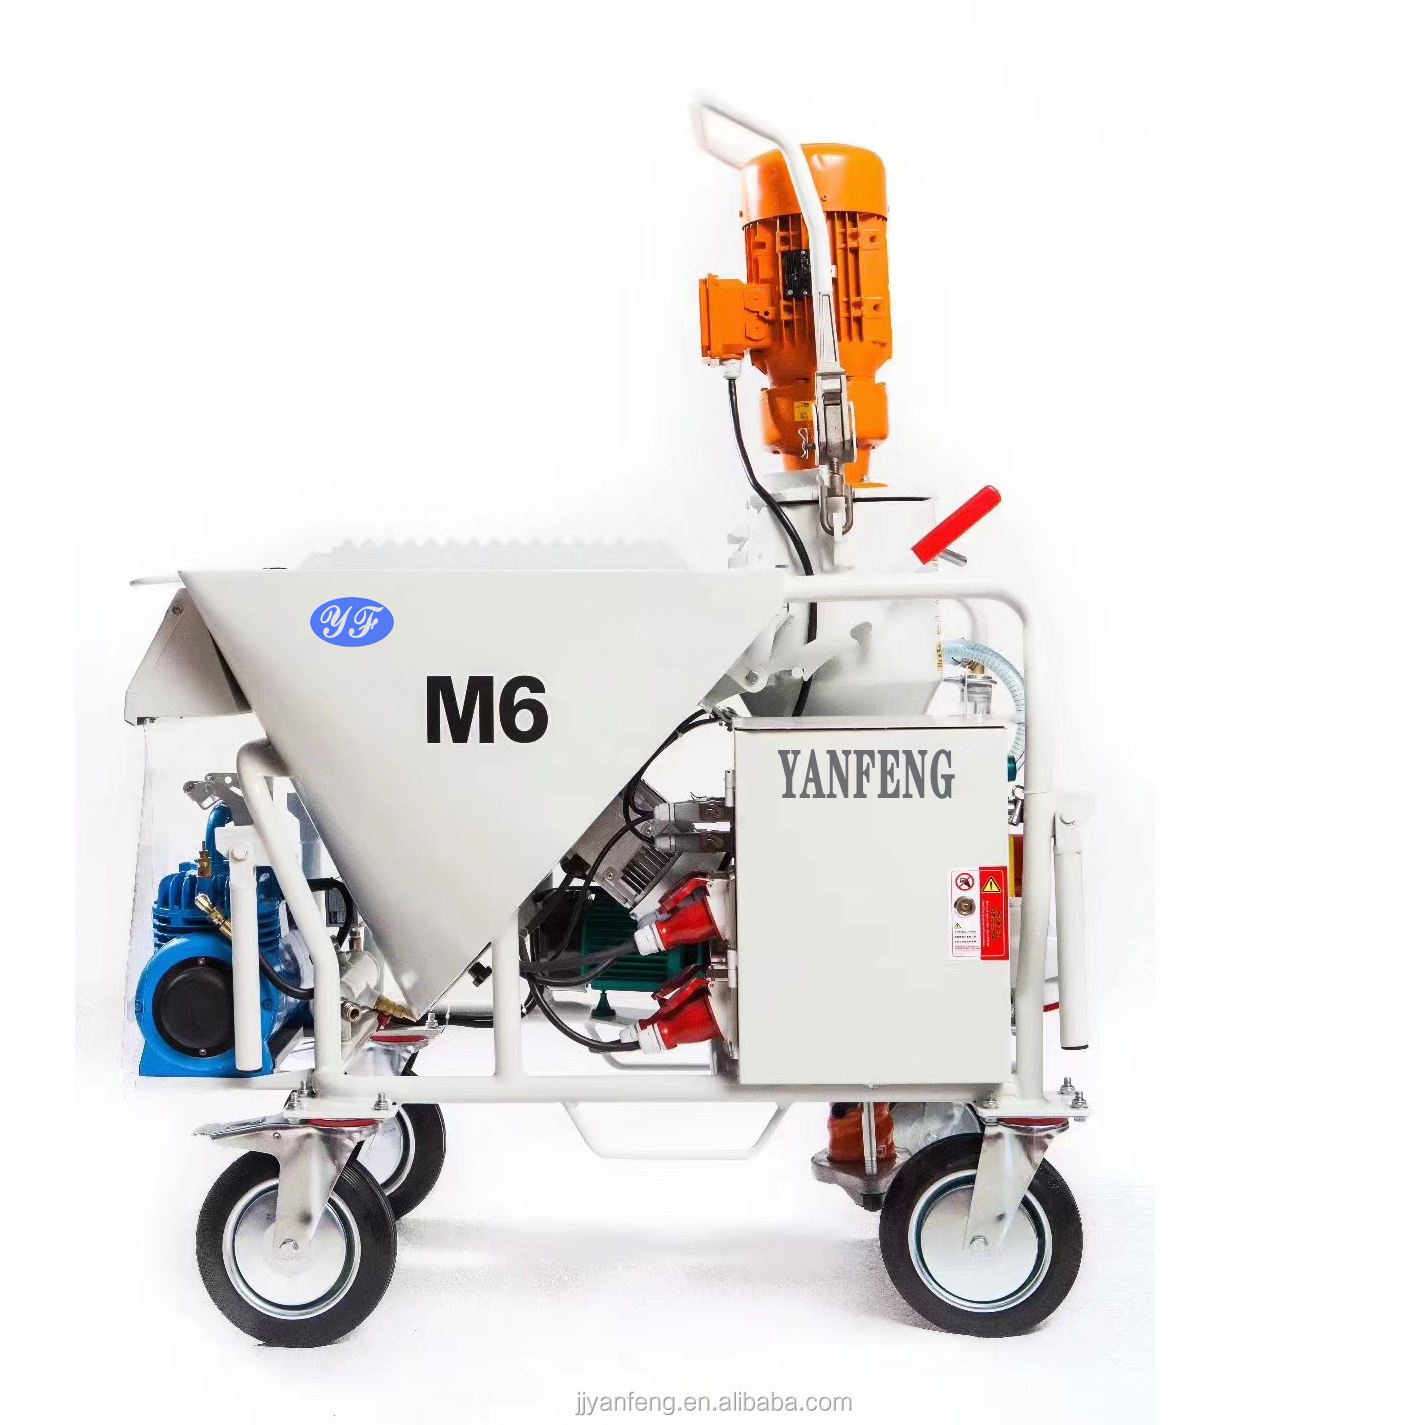 M6 High Quality Mortar Cement Gypsum Base Spray Plastering Machine not PFT G5C G4 na